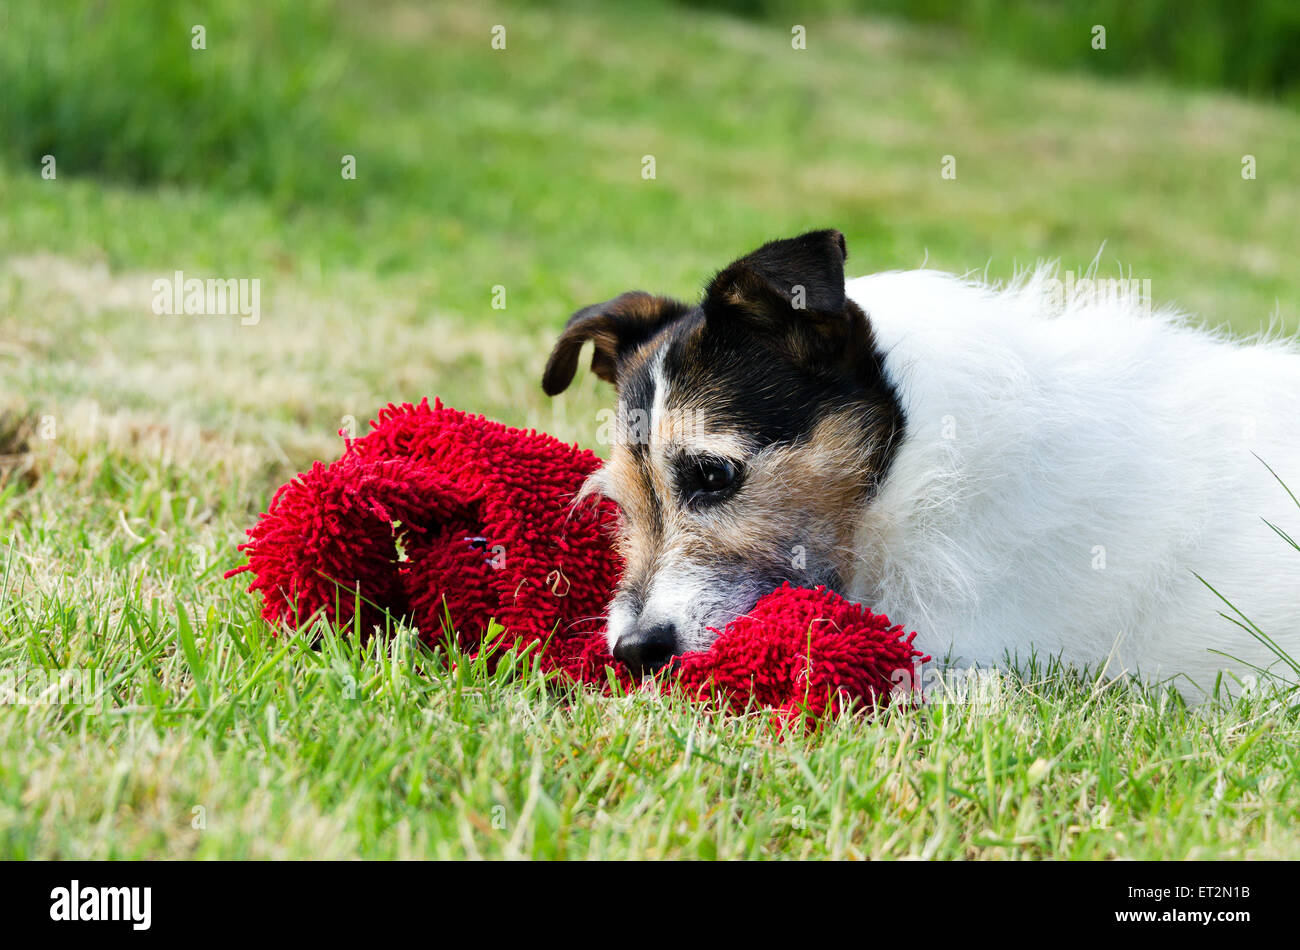 Adorable Jack Russell Terrier laying in grass with red soft toy - Stock Image